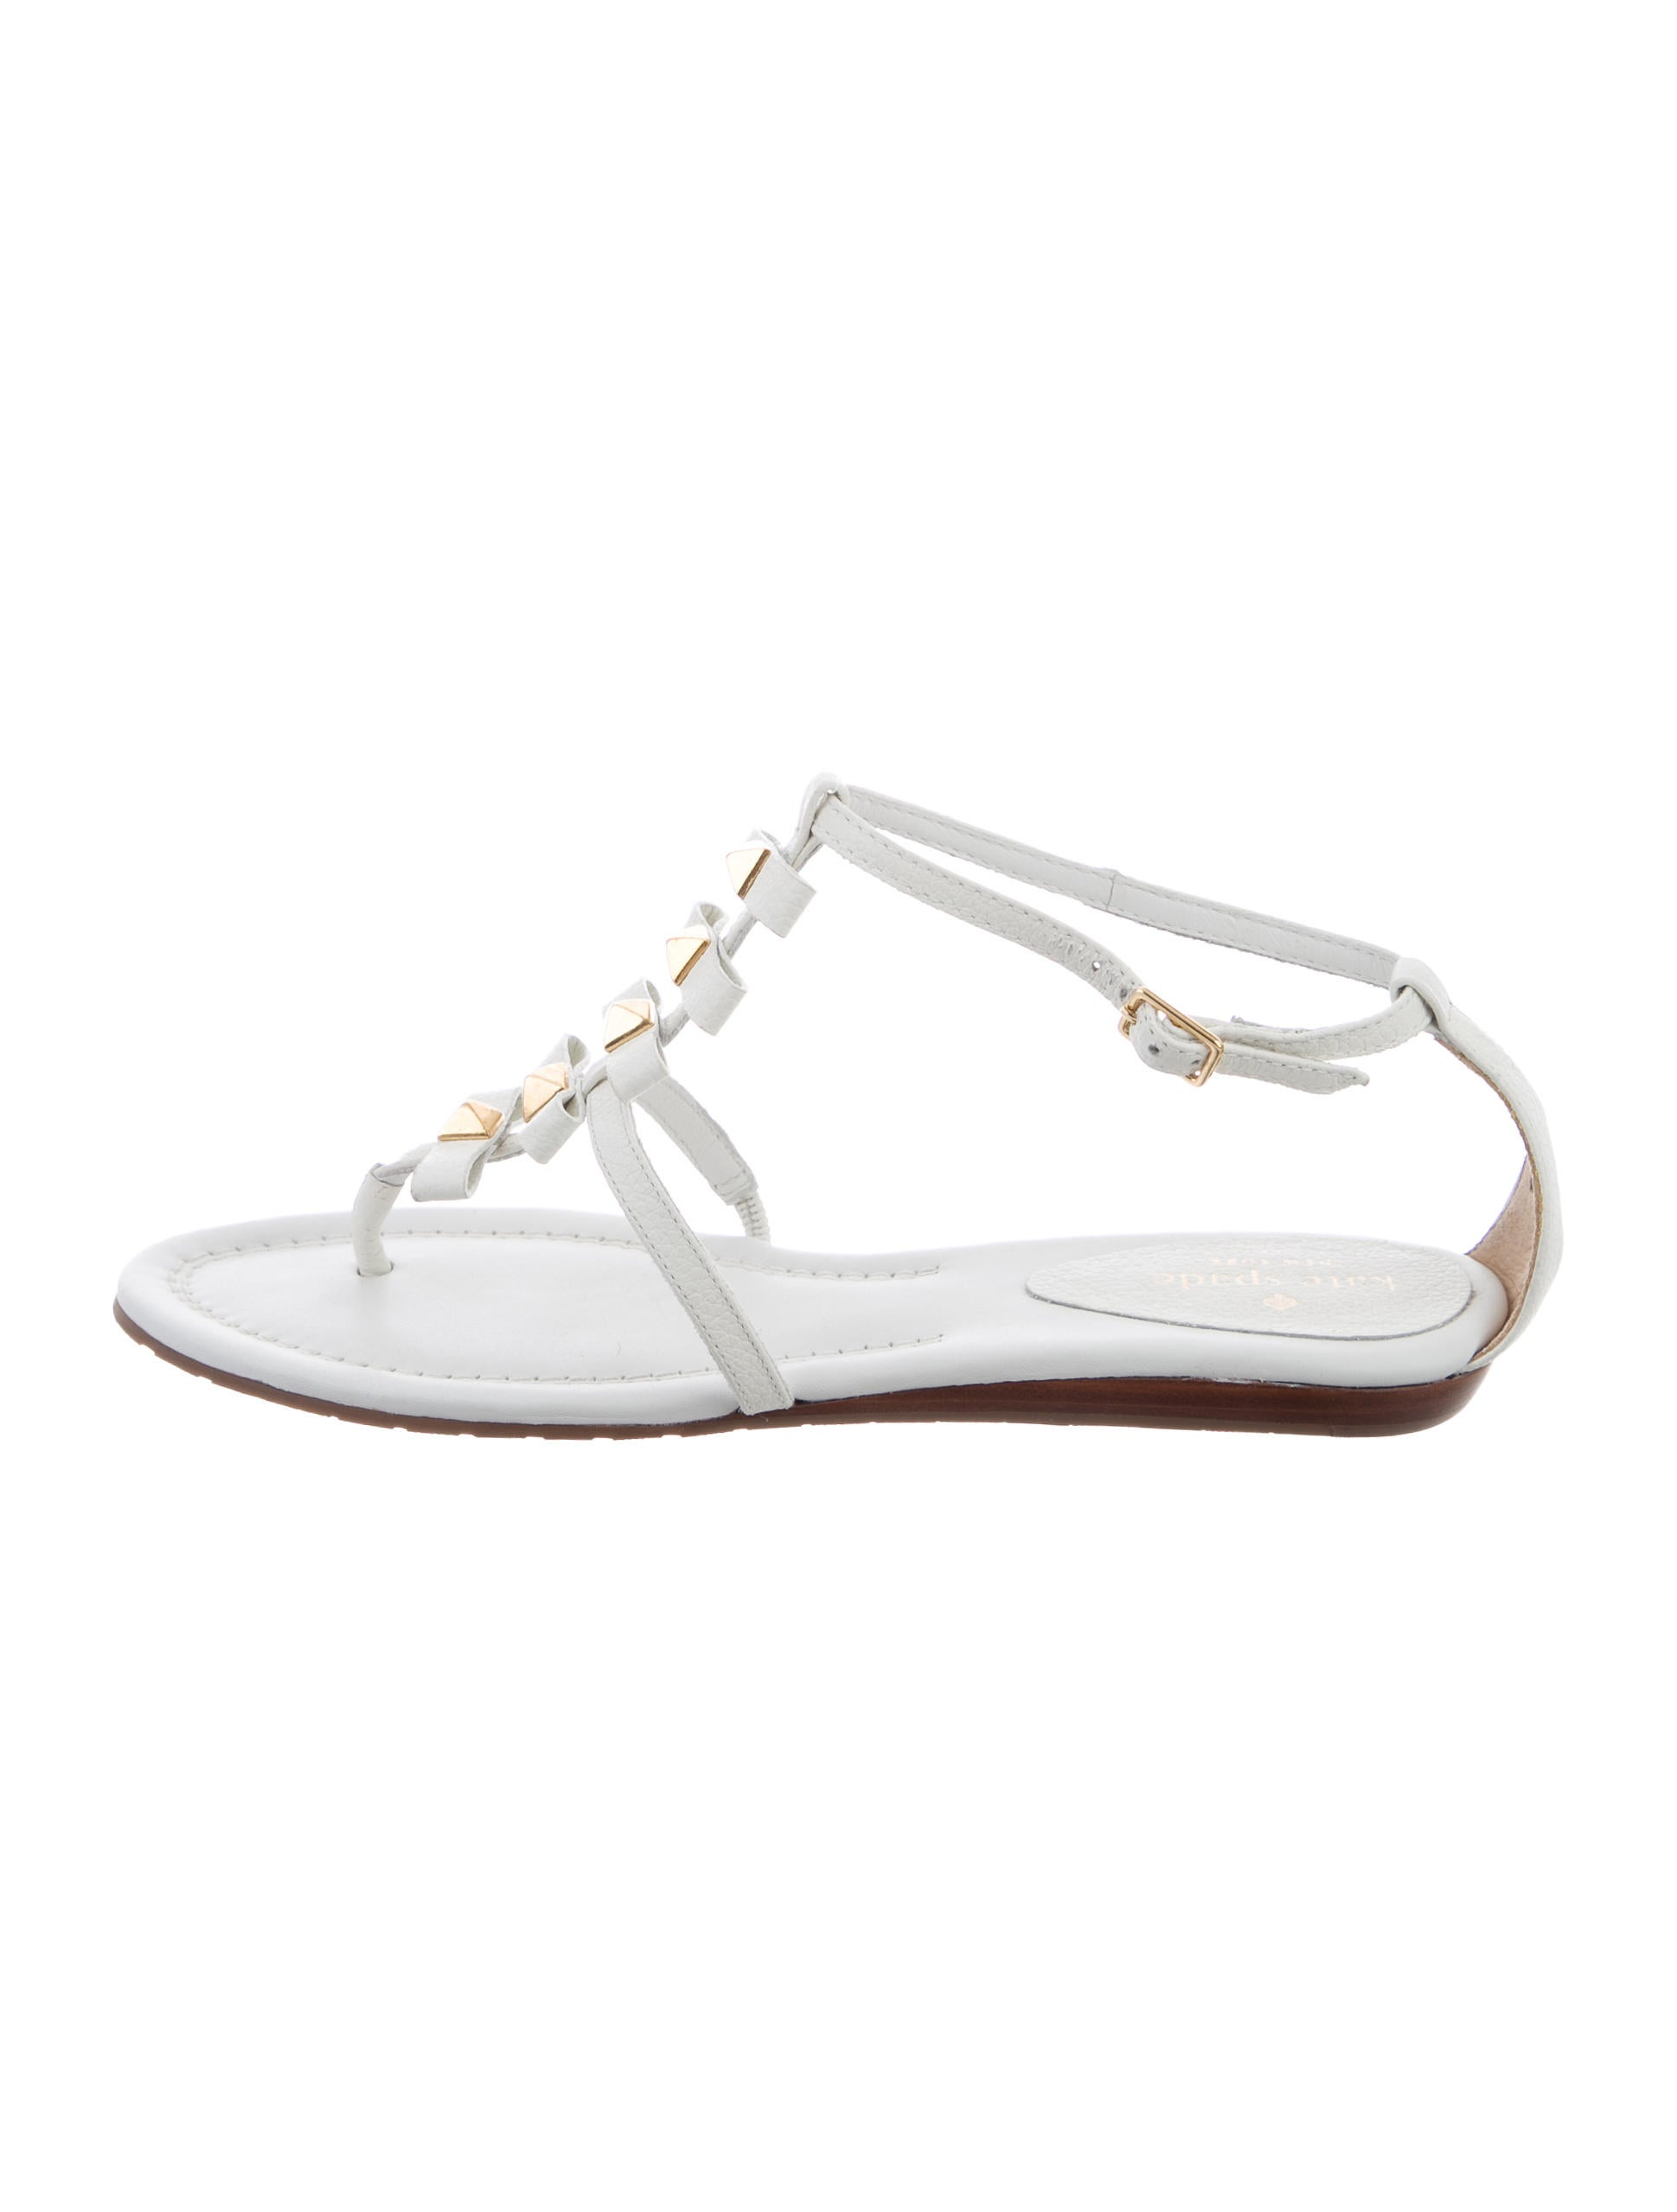 buy cheap for nice clearance official site Kate Spade New York Leather Stud-Embellished Sandals kBlf3q